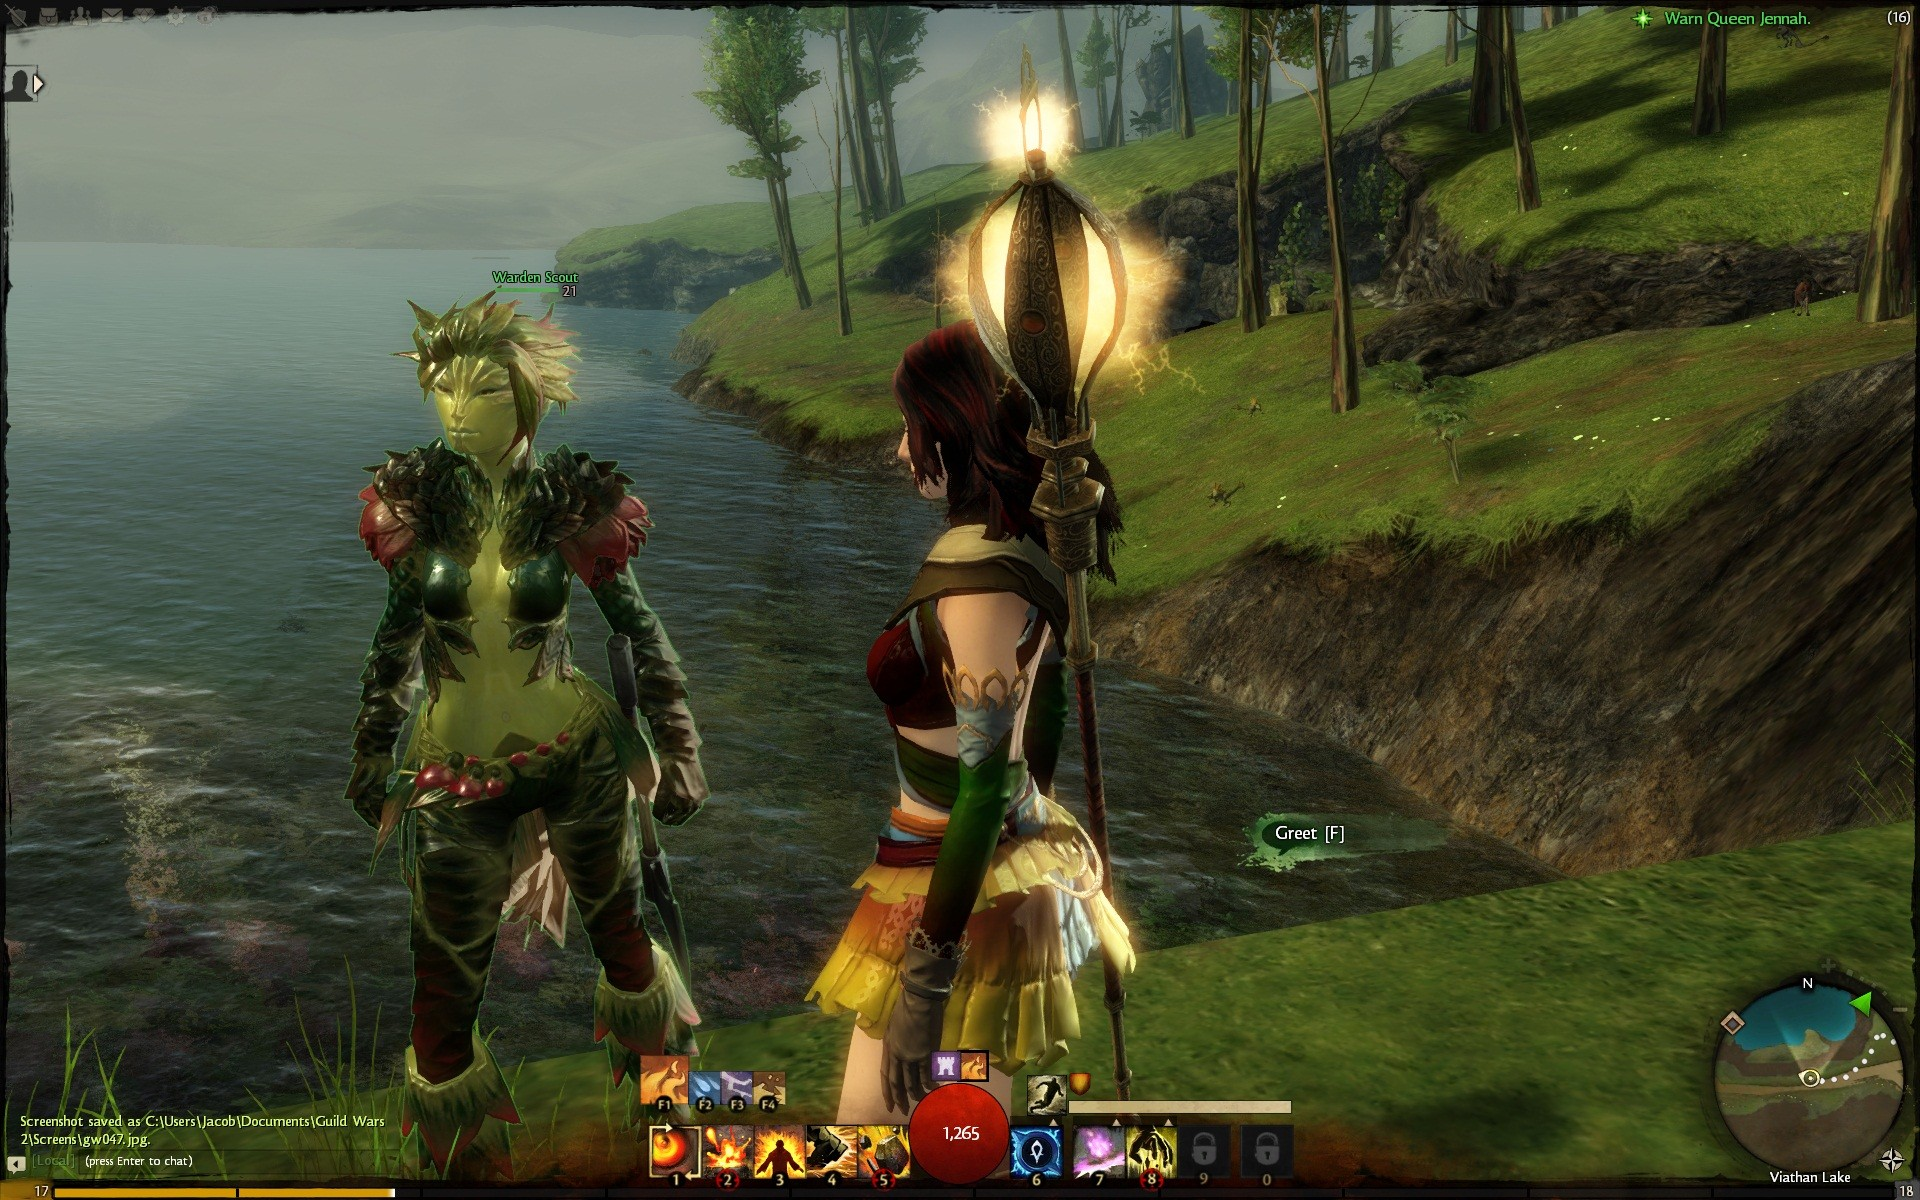 GW2 - Beautiful Sylvari